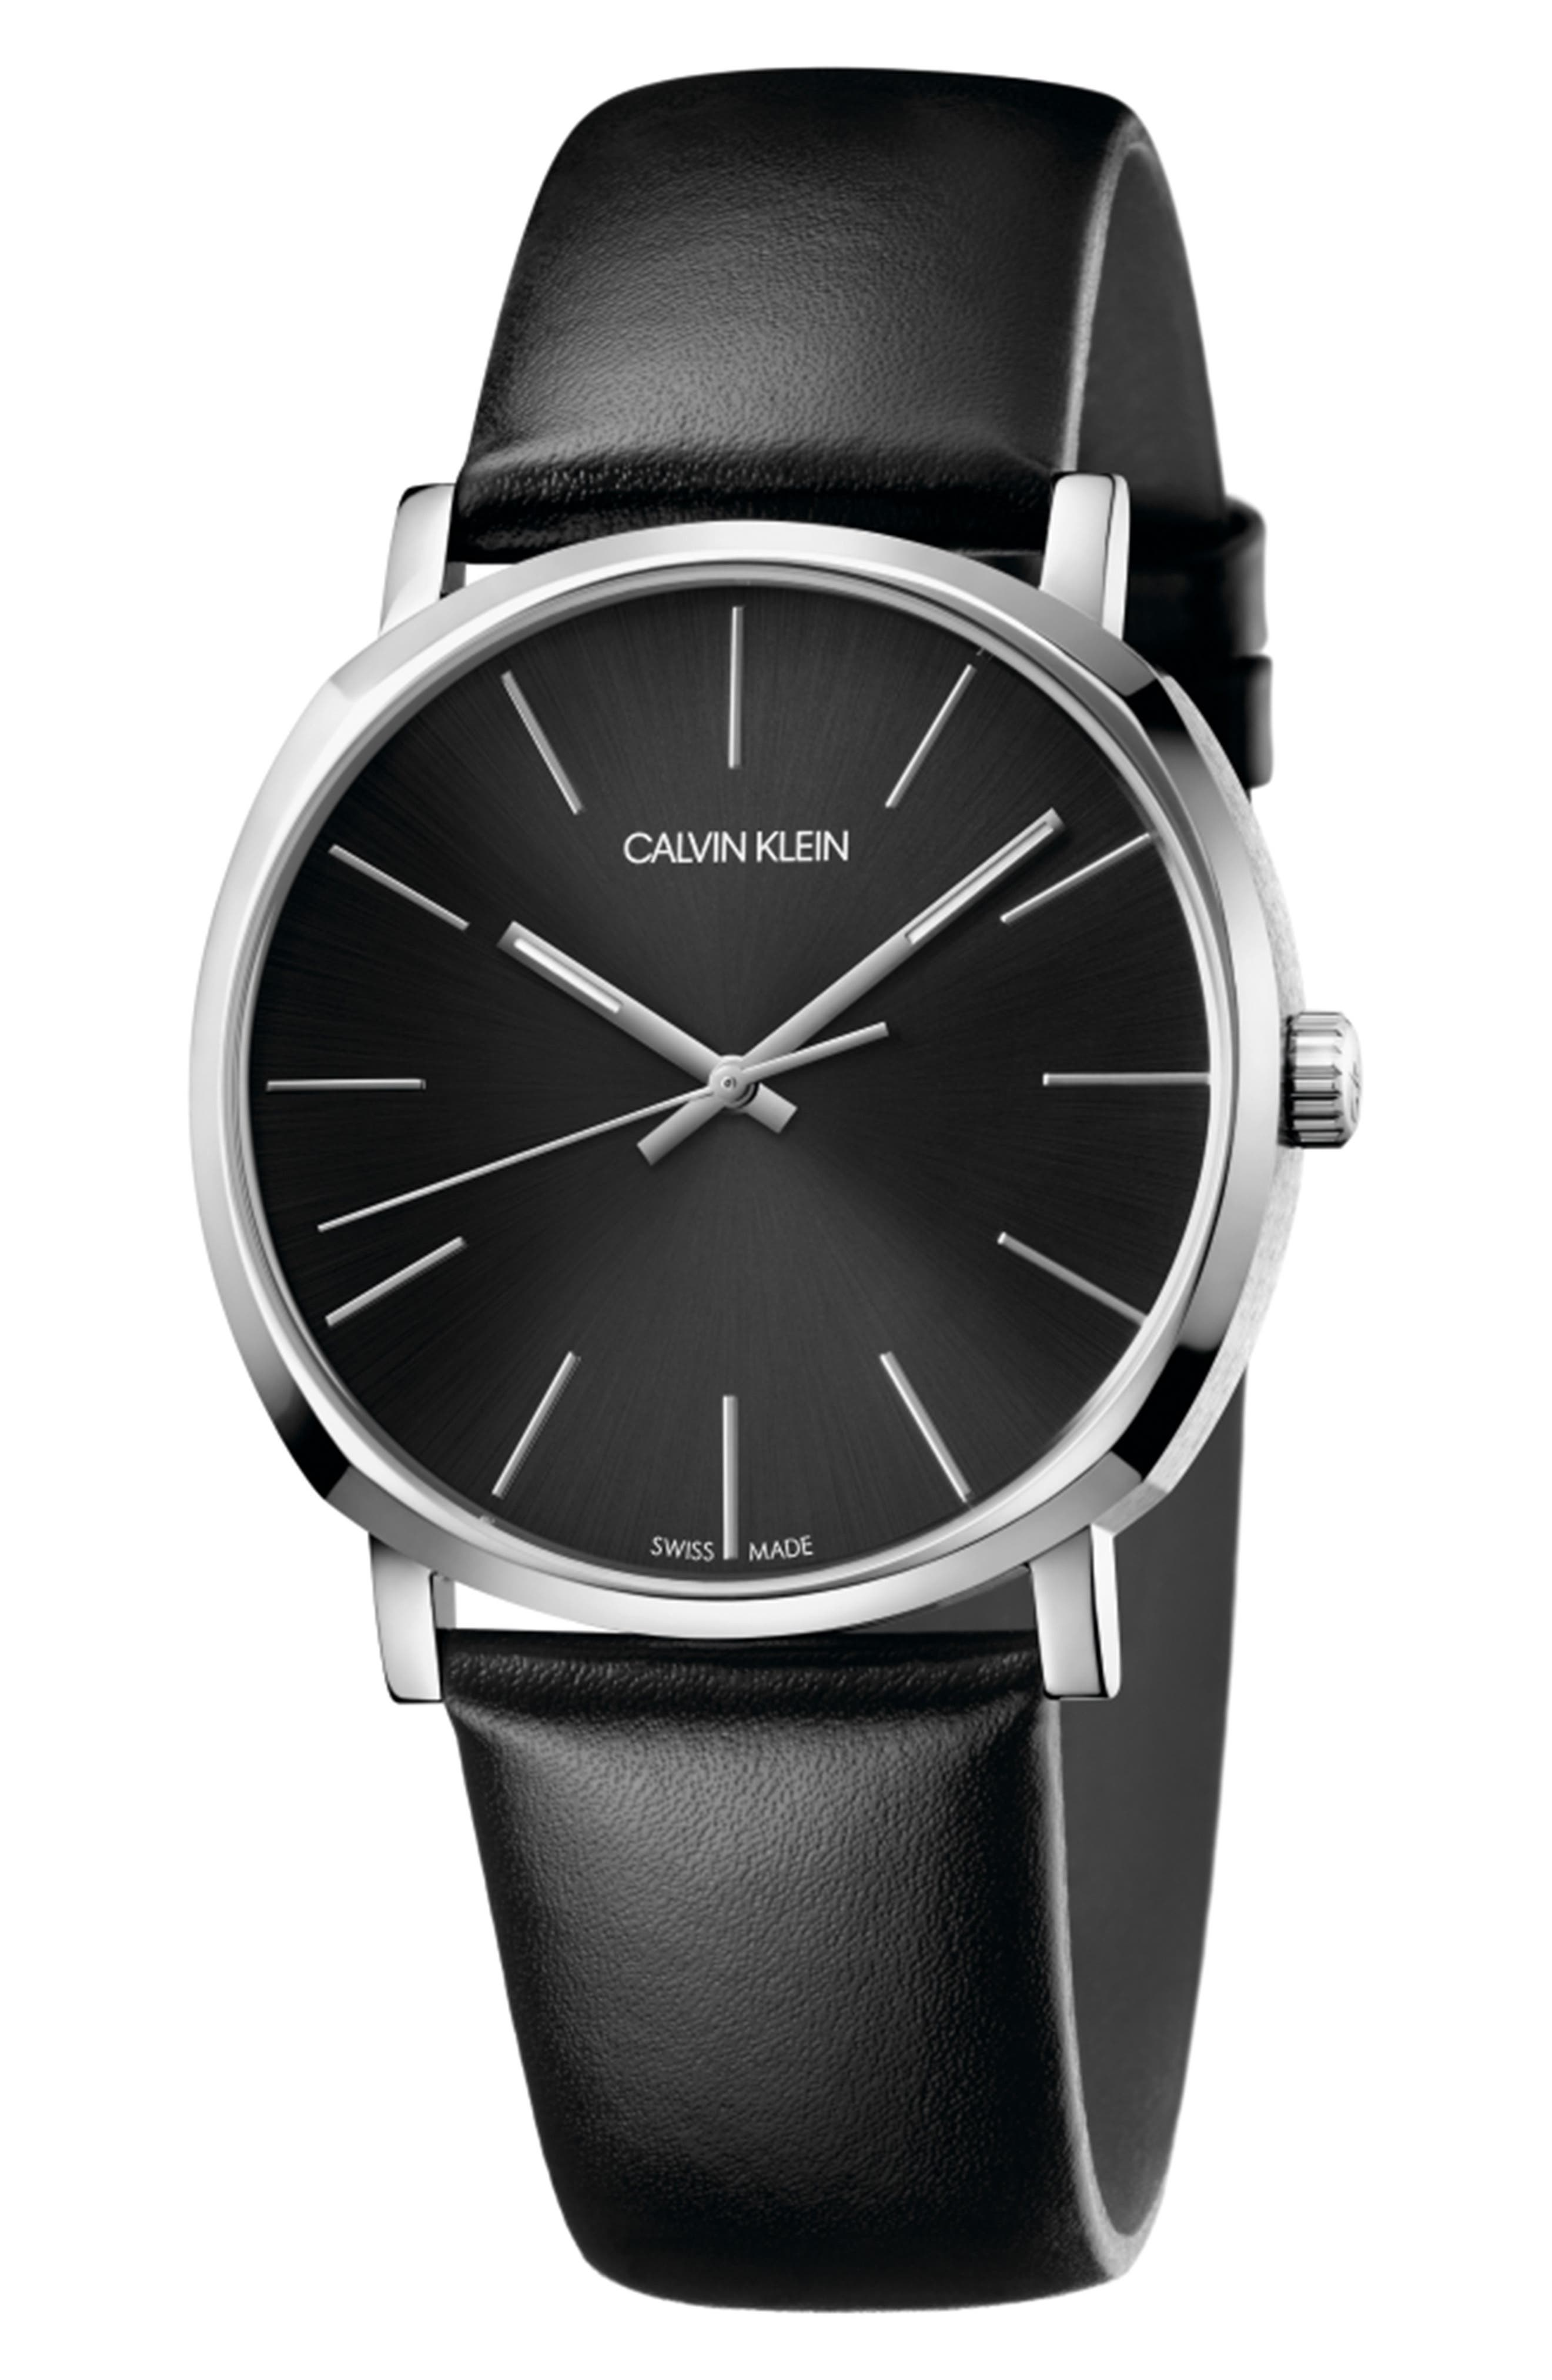 CALVIN KLEIN Posh Leather Band Watch, 40mm, Main, color, BLACK/ SILVER/ BLACK